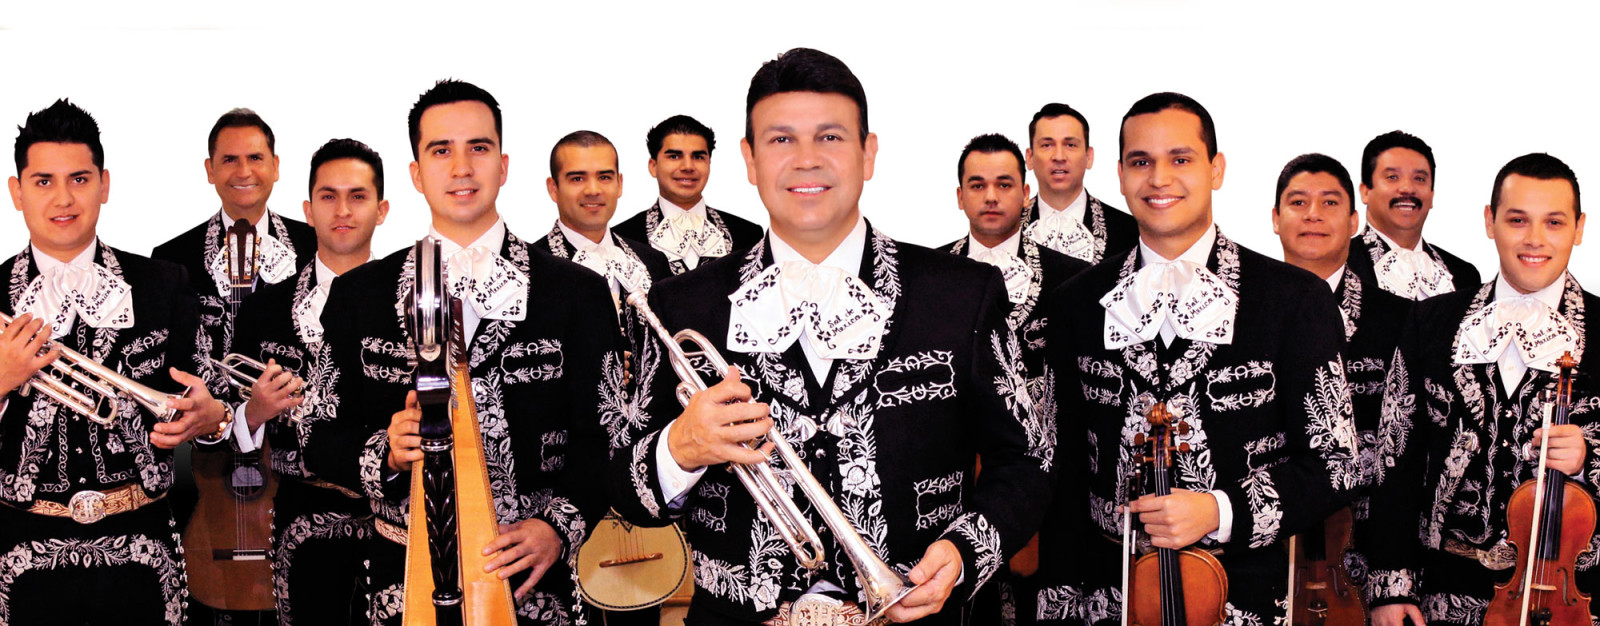 Mariachi Sol de Mexico - SRO Artists, Inc.